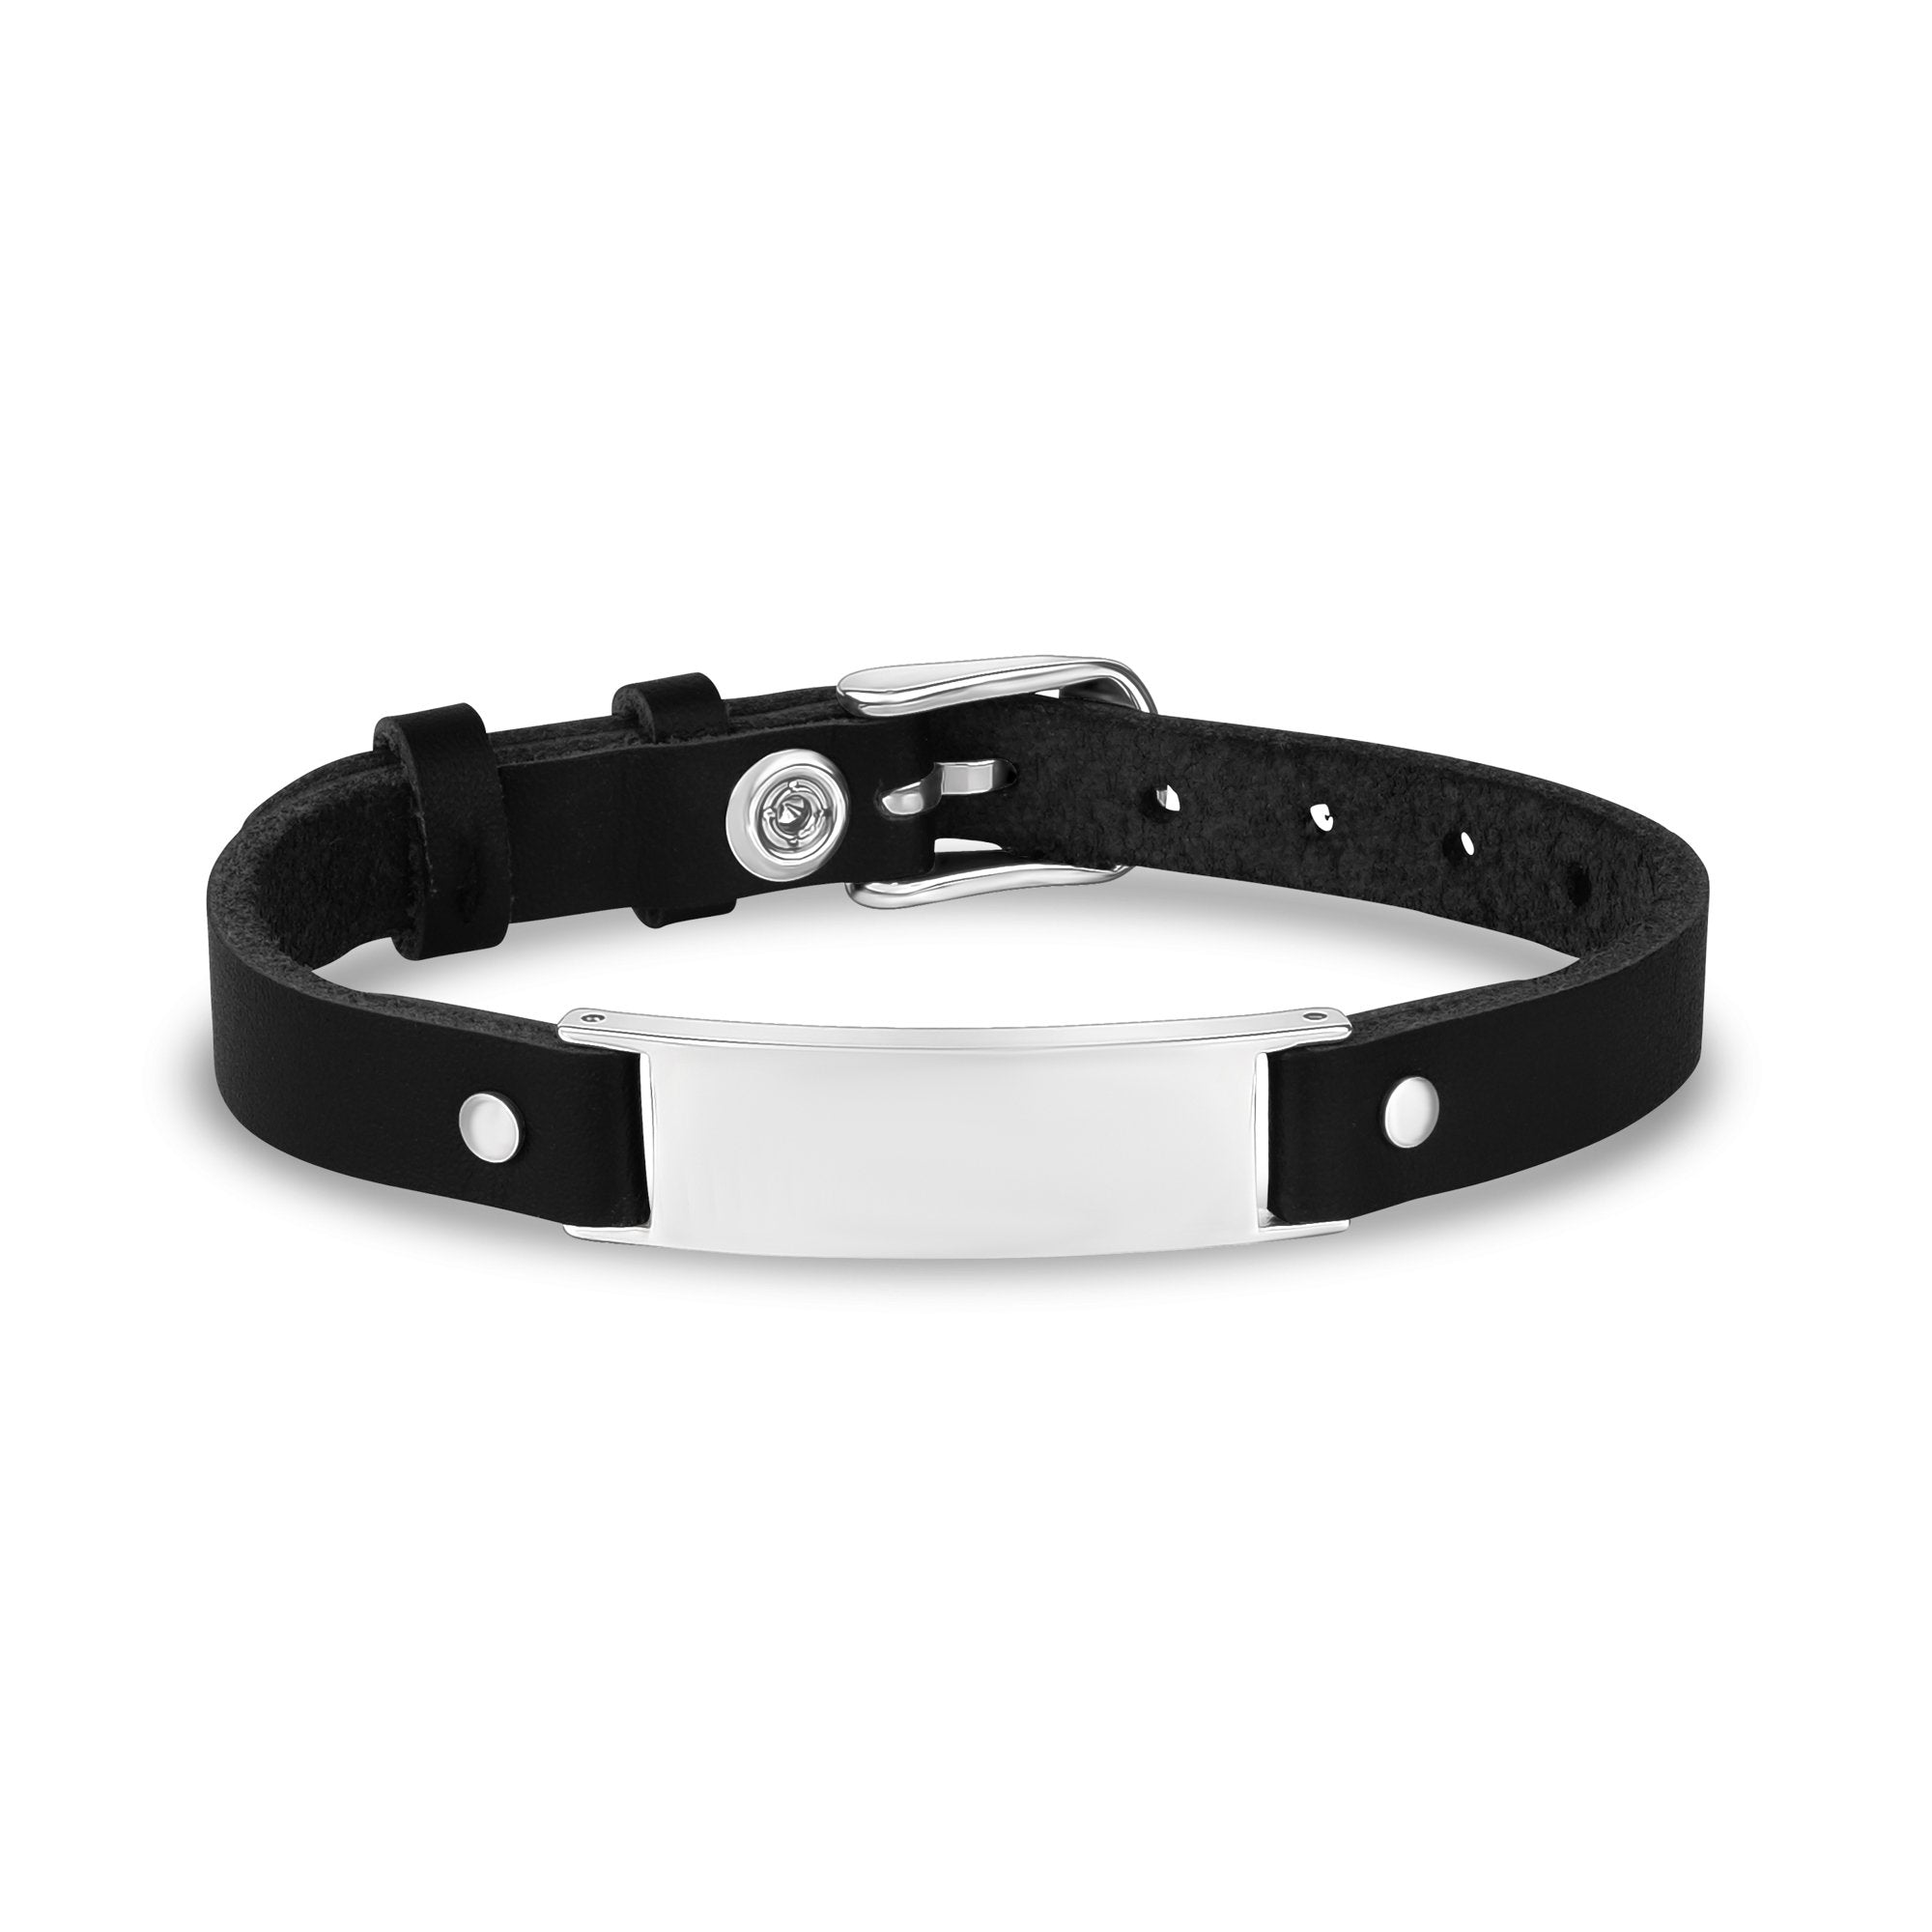 Mens Steel Leather Bracelets - Engravable Stainless Steel Black Leather ID Bracelet